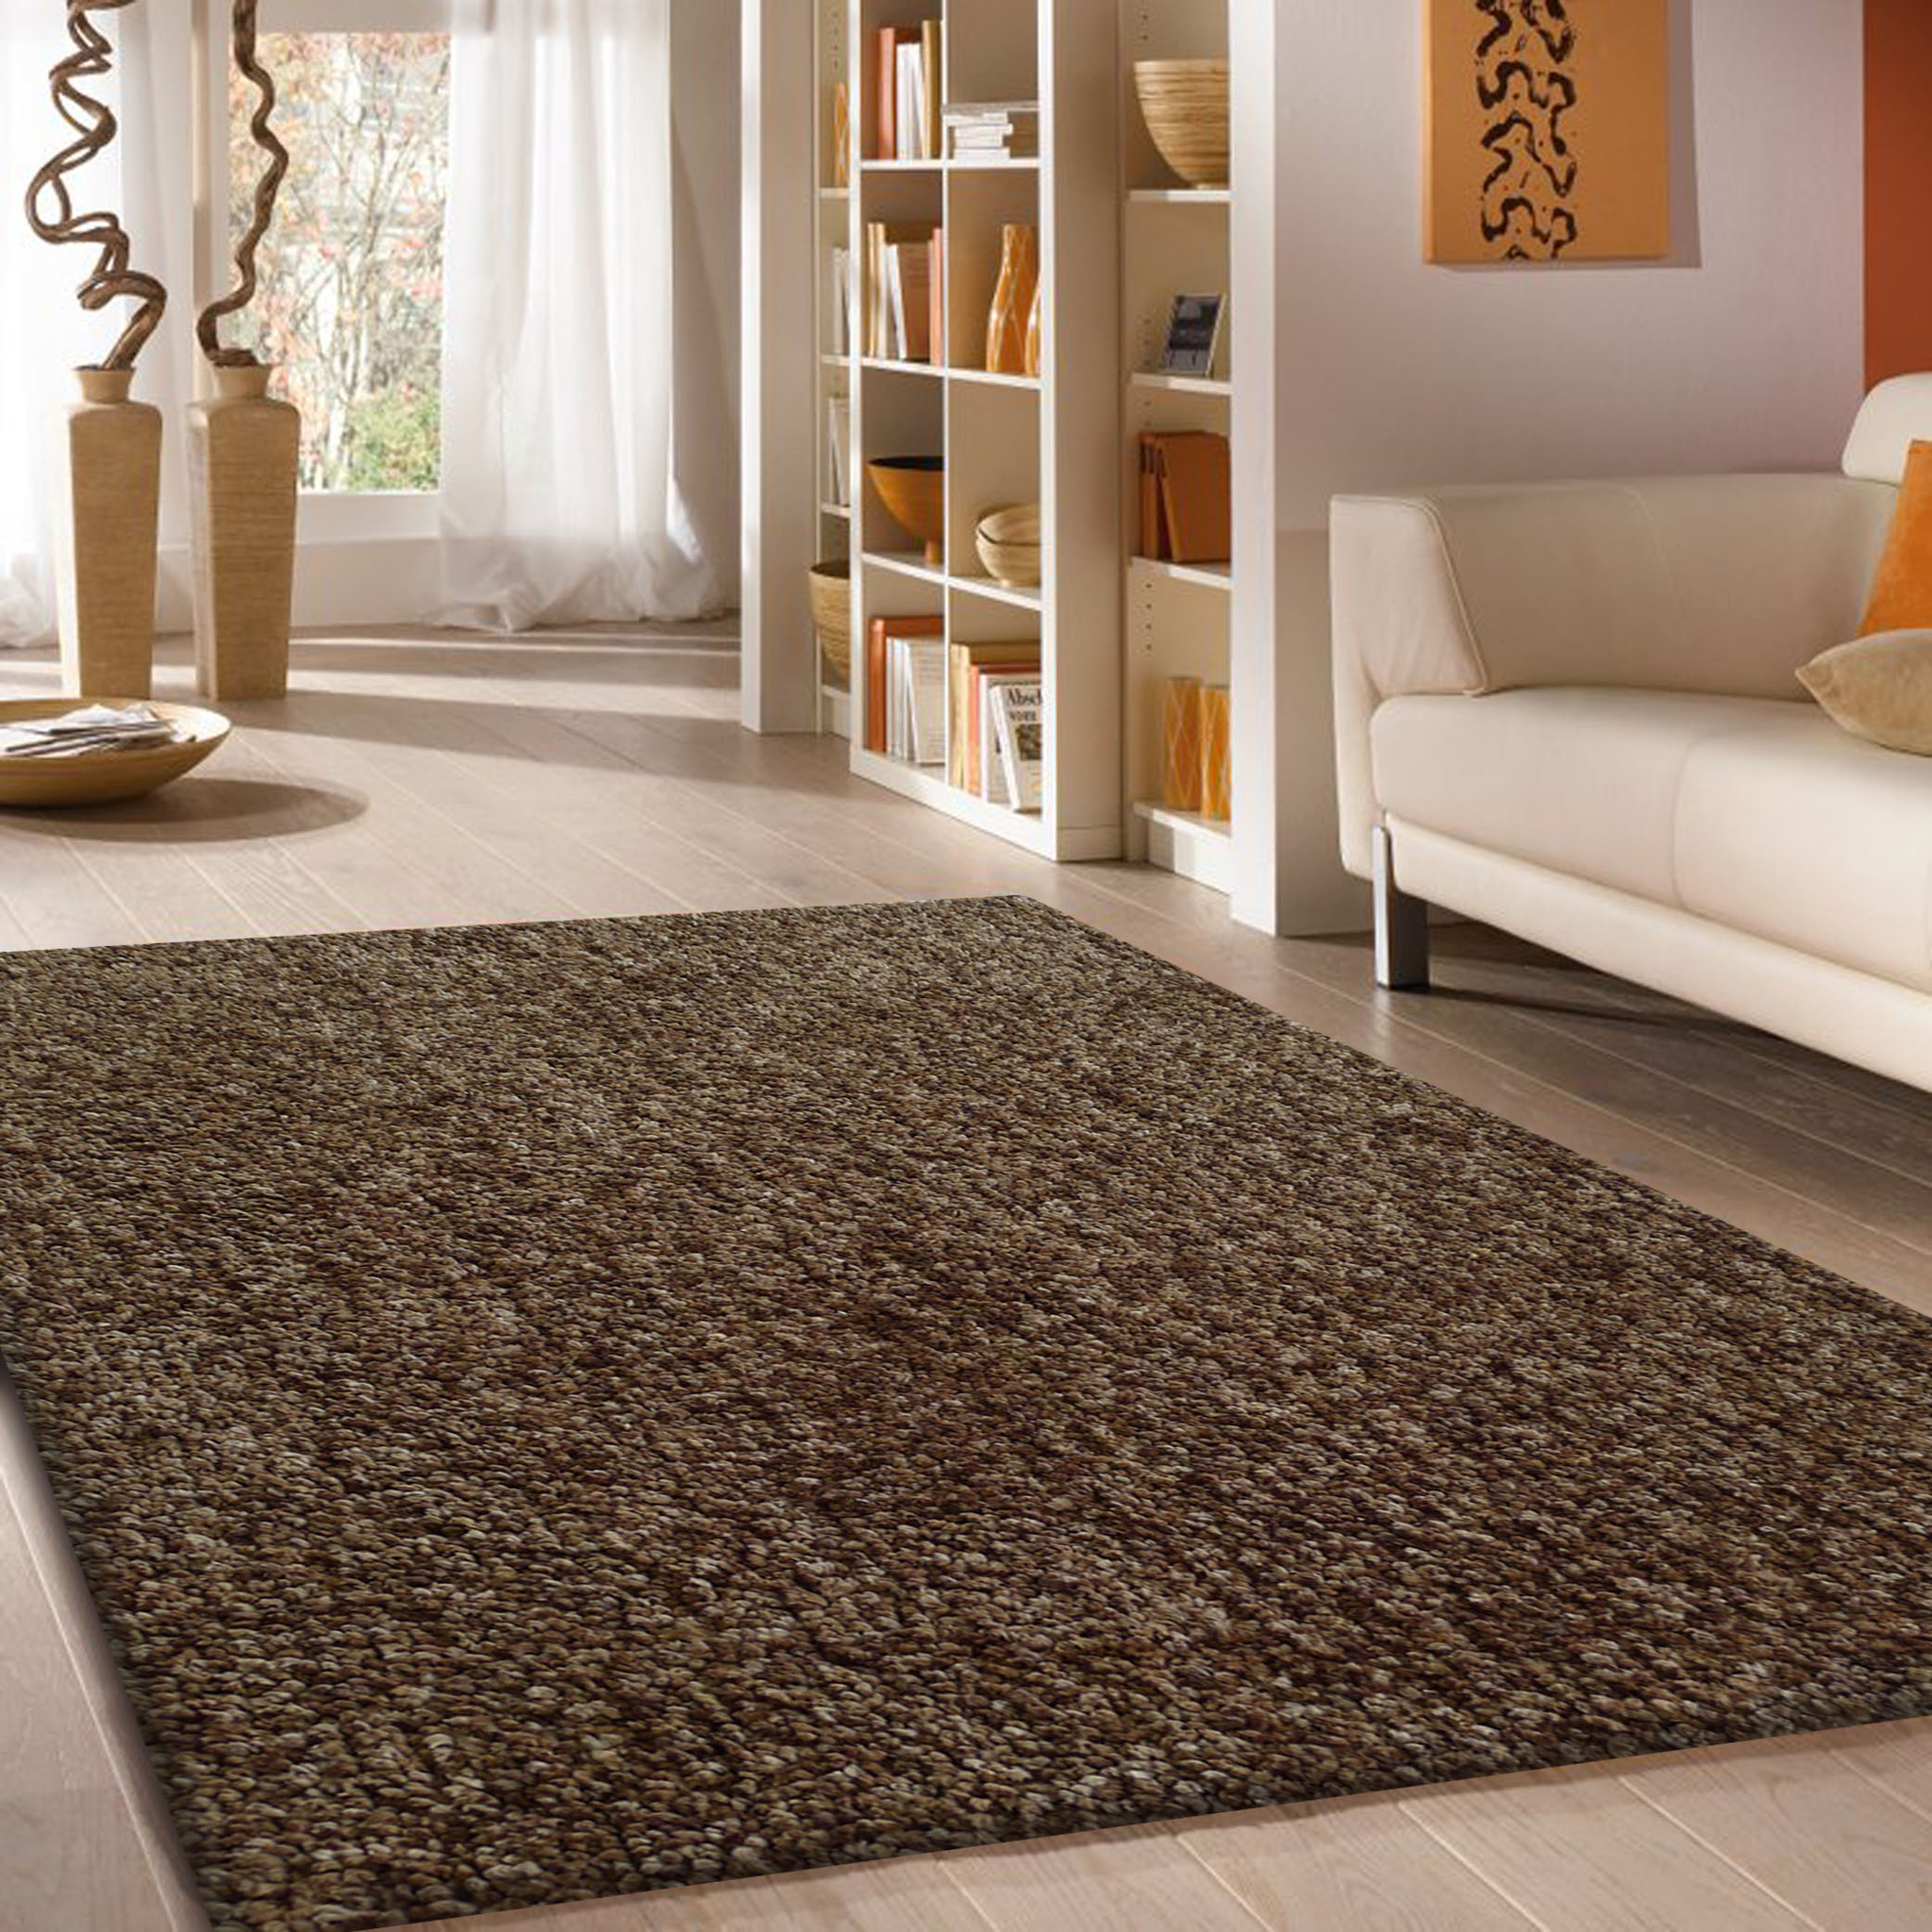 Pictures of Hand-tufted Winter Grey Thick Plush Shag Area Rug 5u0027 x 7u0027 u2026 thick plush area rugs